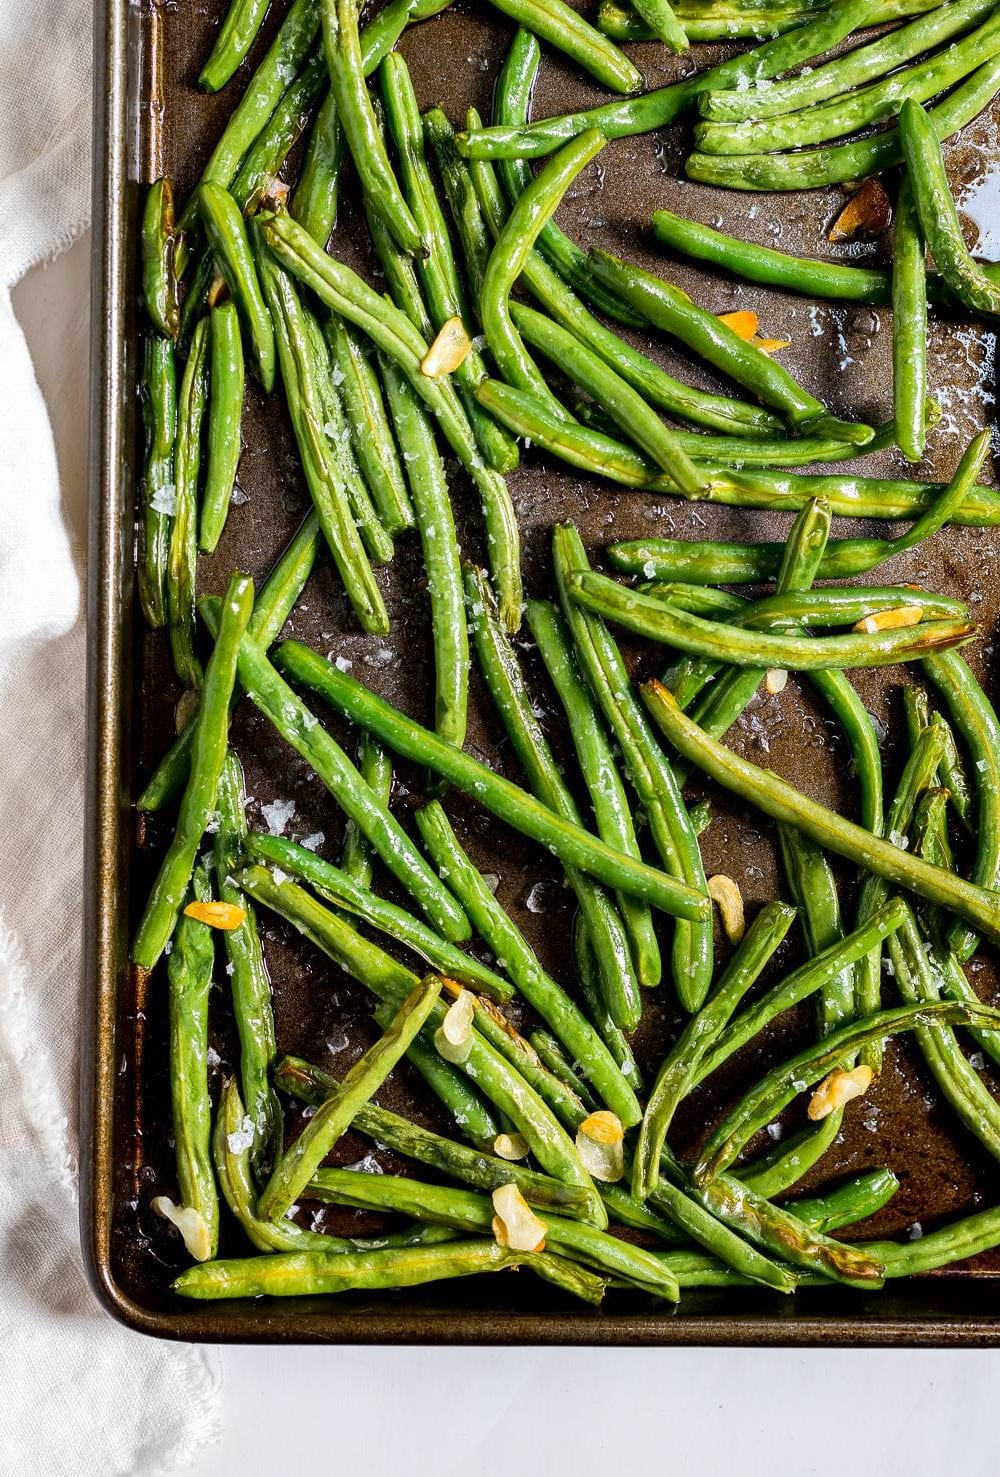 roasted fresh green beans with slices of golden garlic in a dark metal baking sheet